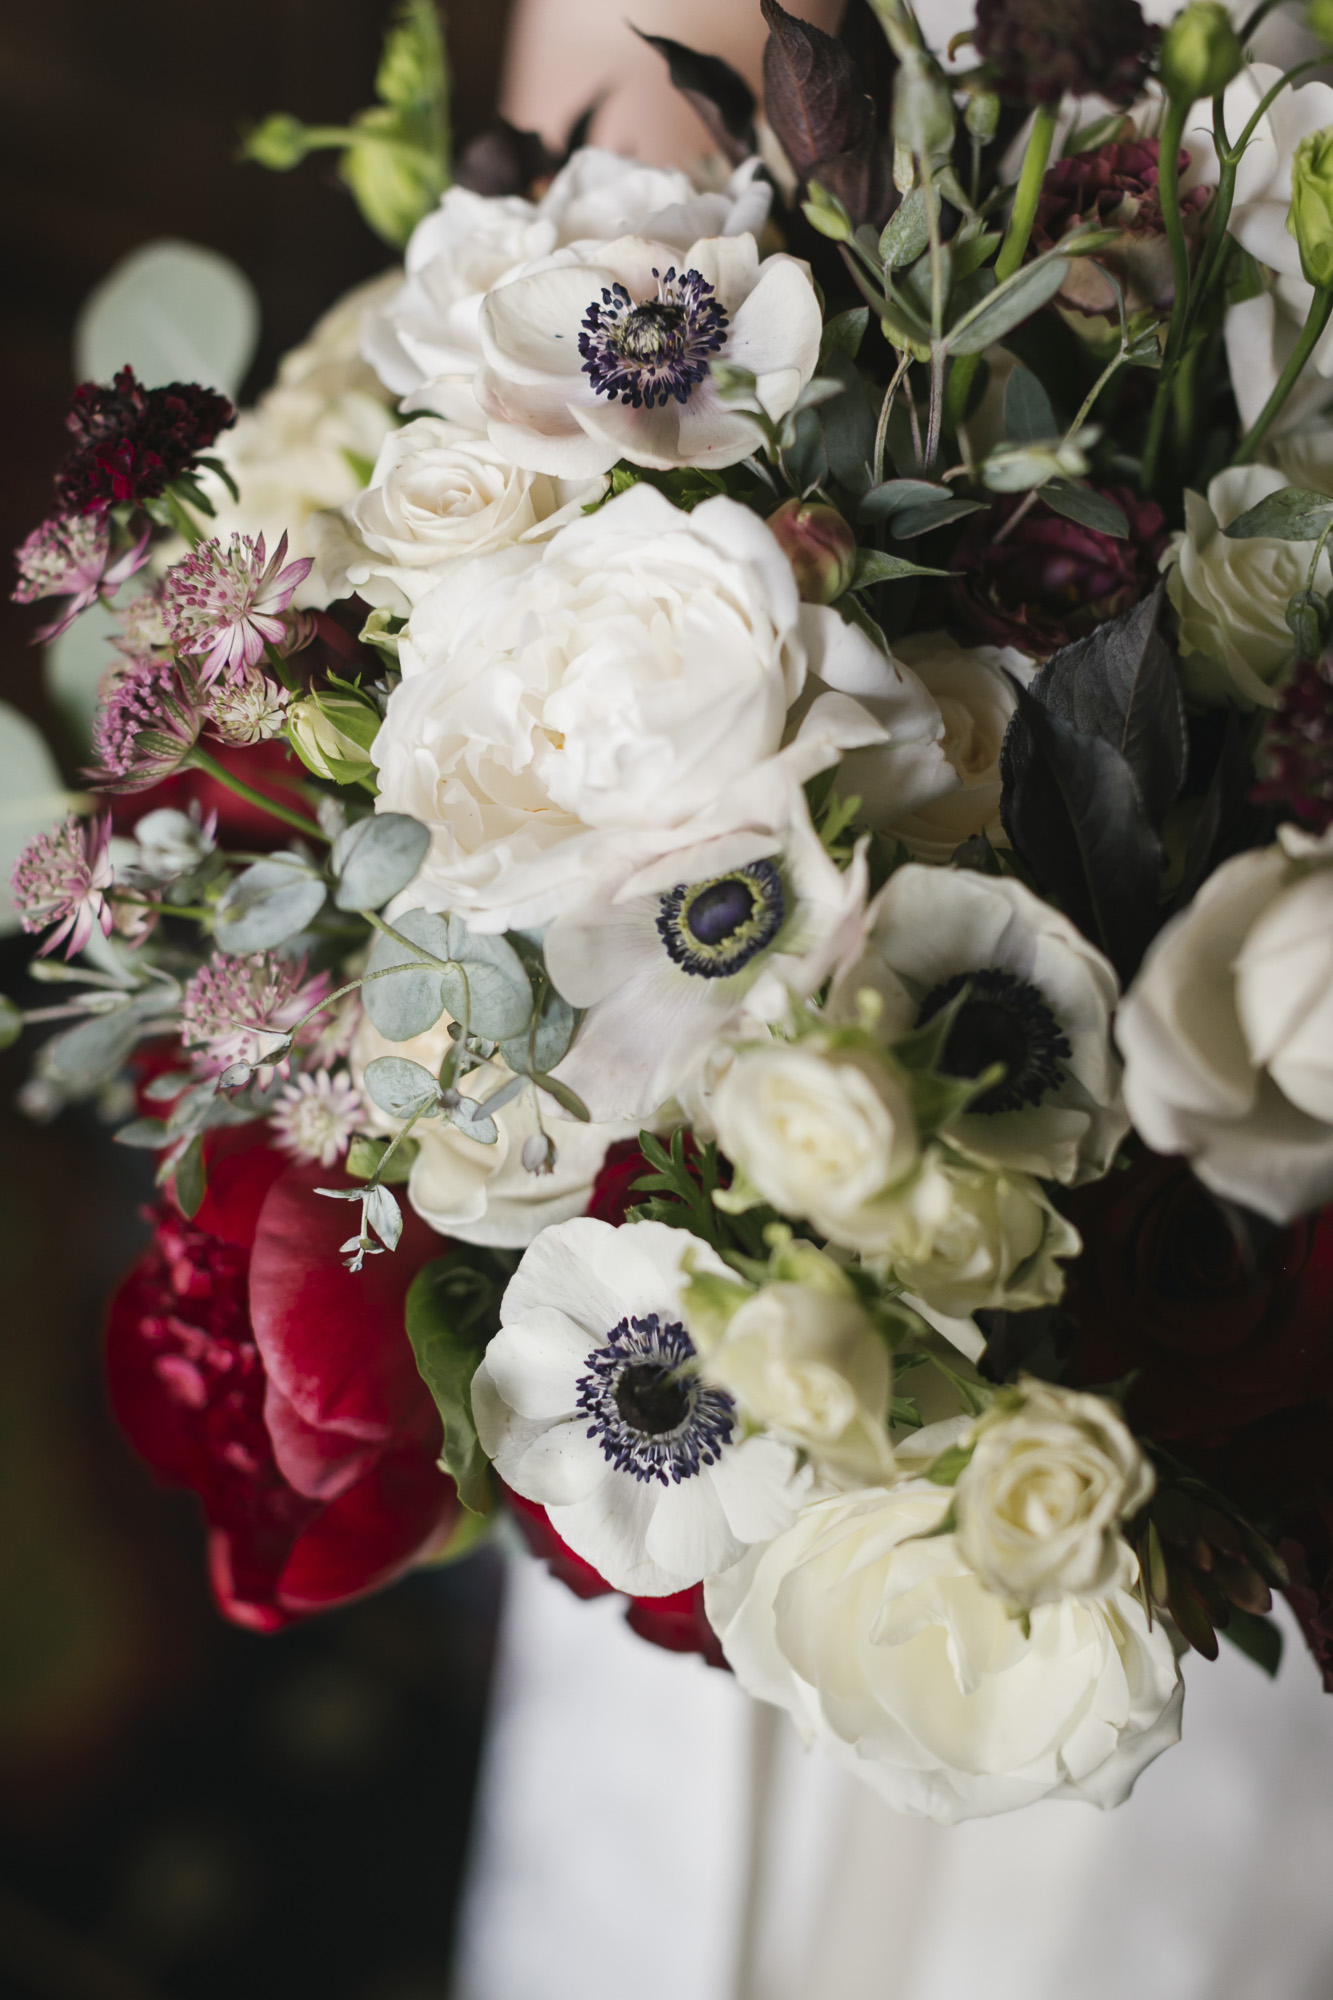 A beautiful winter bouquet with white anemones